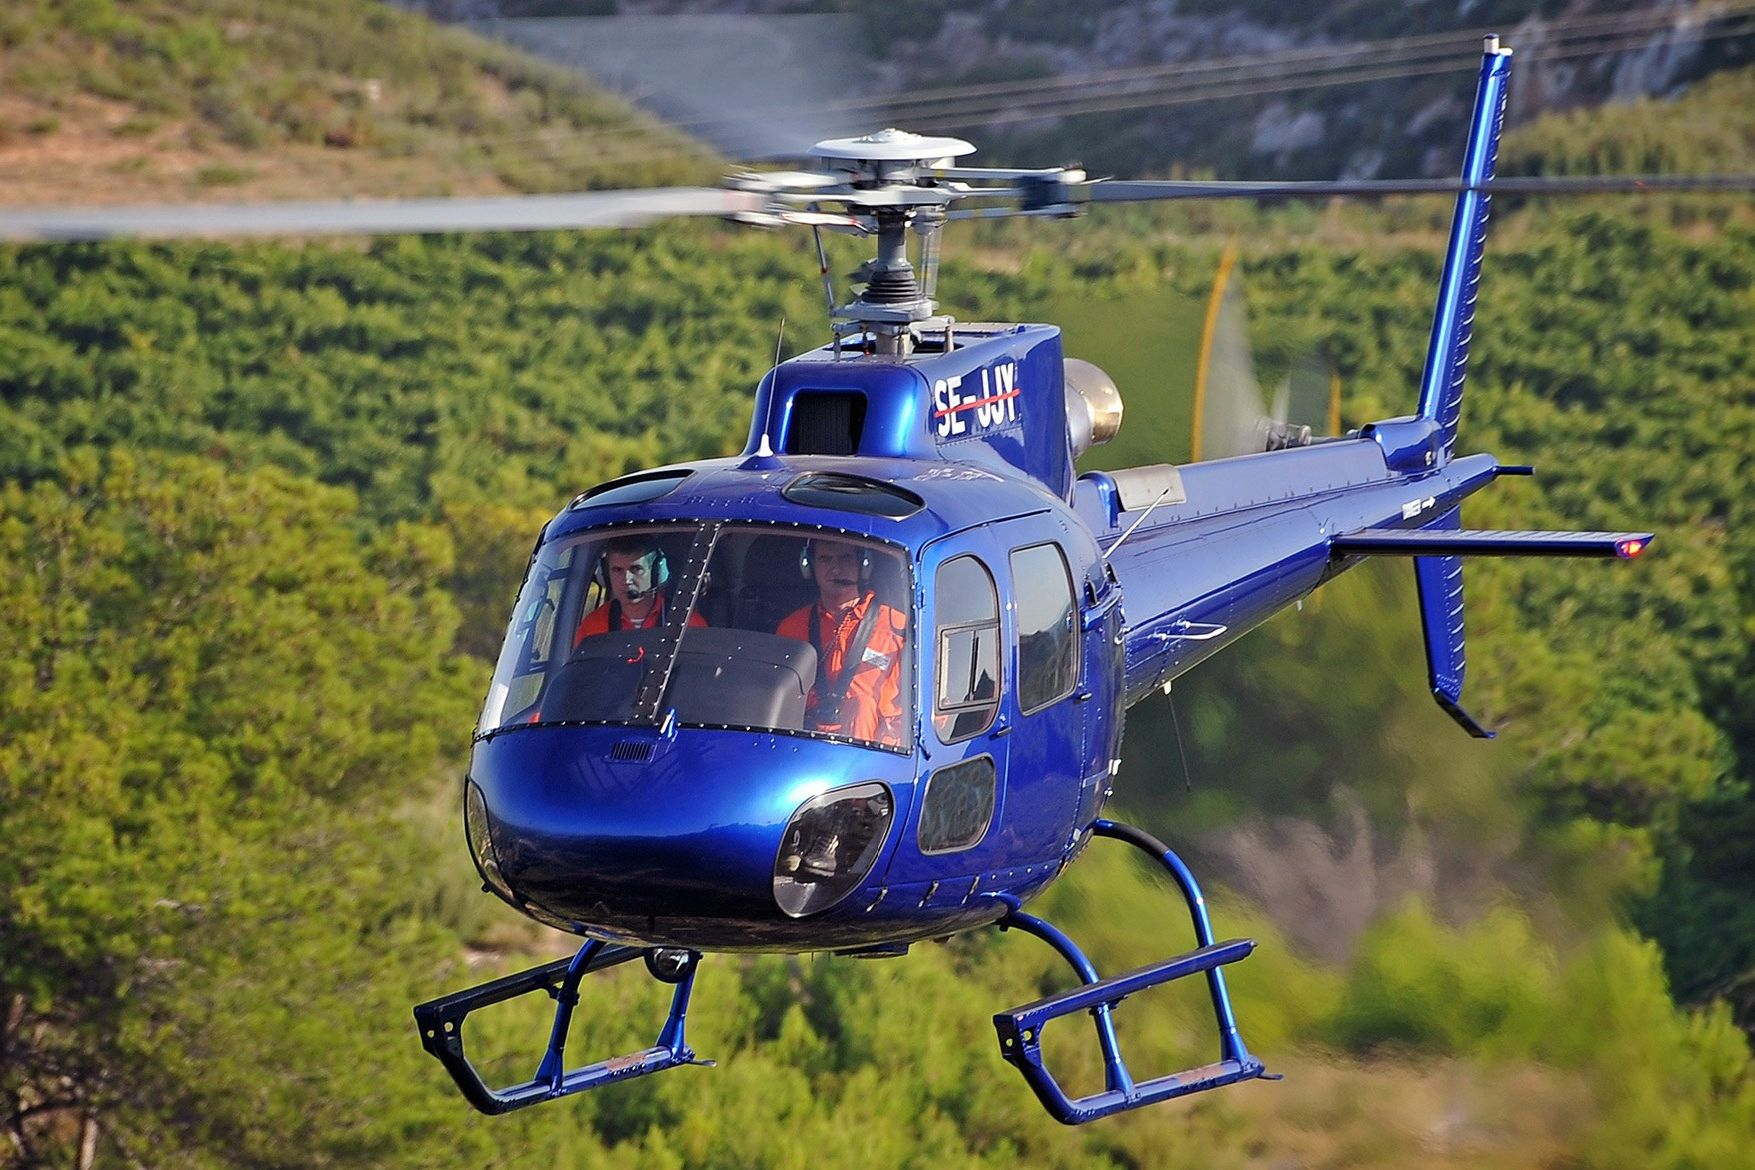 Mlkjets private charter helicopter1 - Private Charter Helicopters